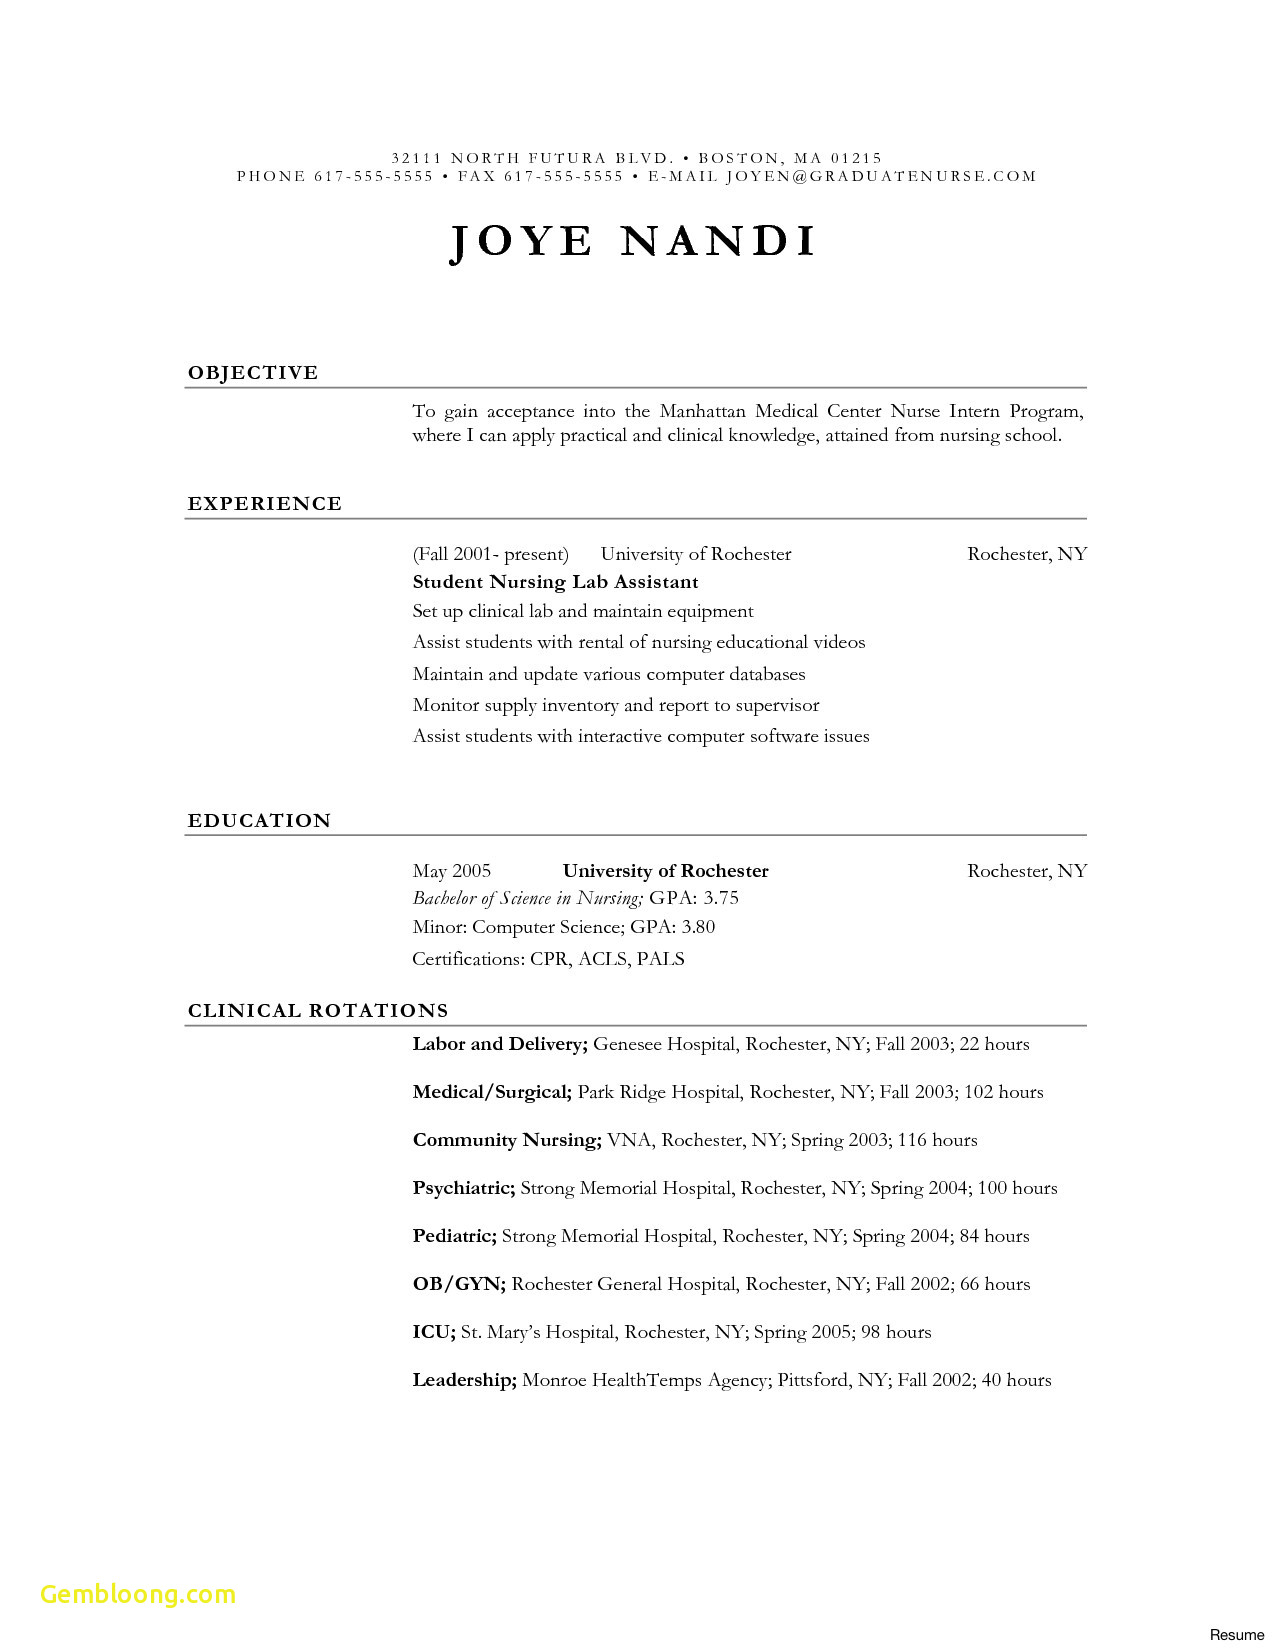 Computer Technician Resume Template - Download Luxury Pharmacy Tech Resume